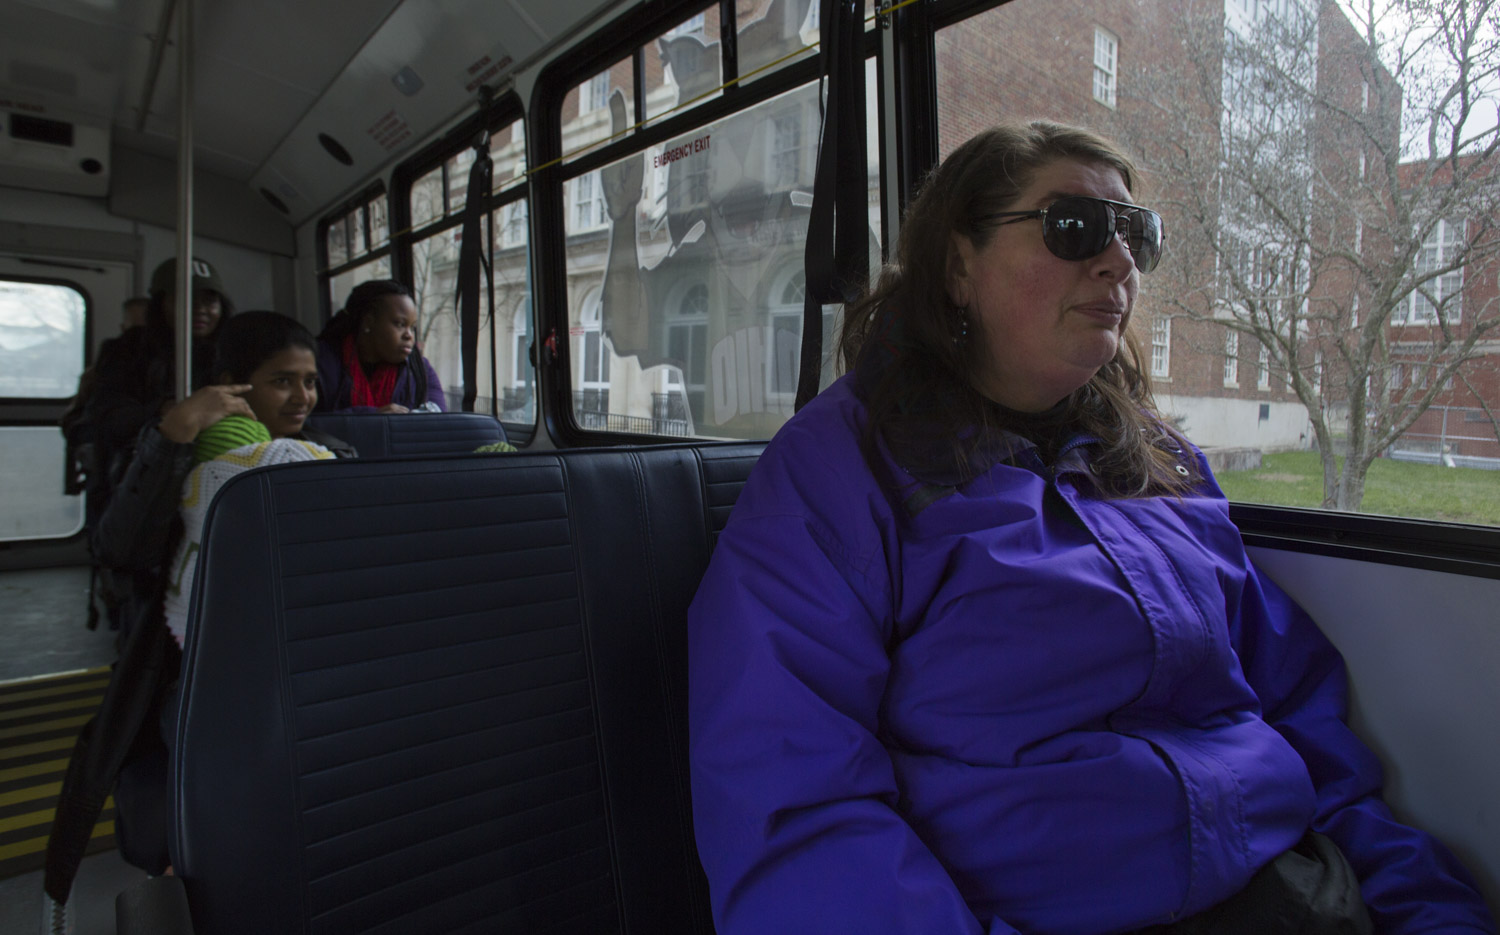 Christi is dependent on Athens Public Transit to run errands and attend frequent appointments for her mental and physical health. Because of her illness she is unable to maintain a job, and can't afford a car of her own on her Social Security Income